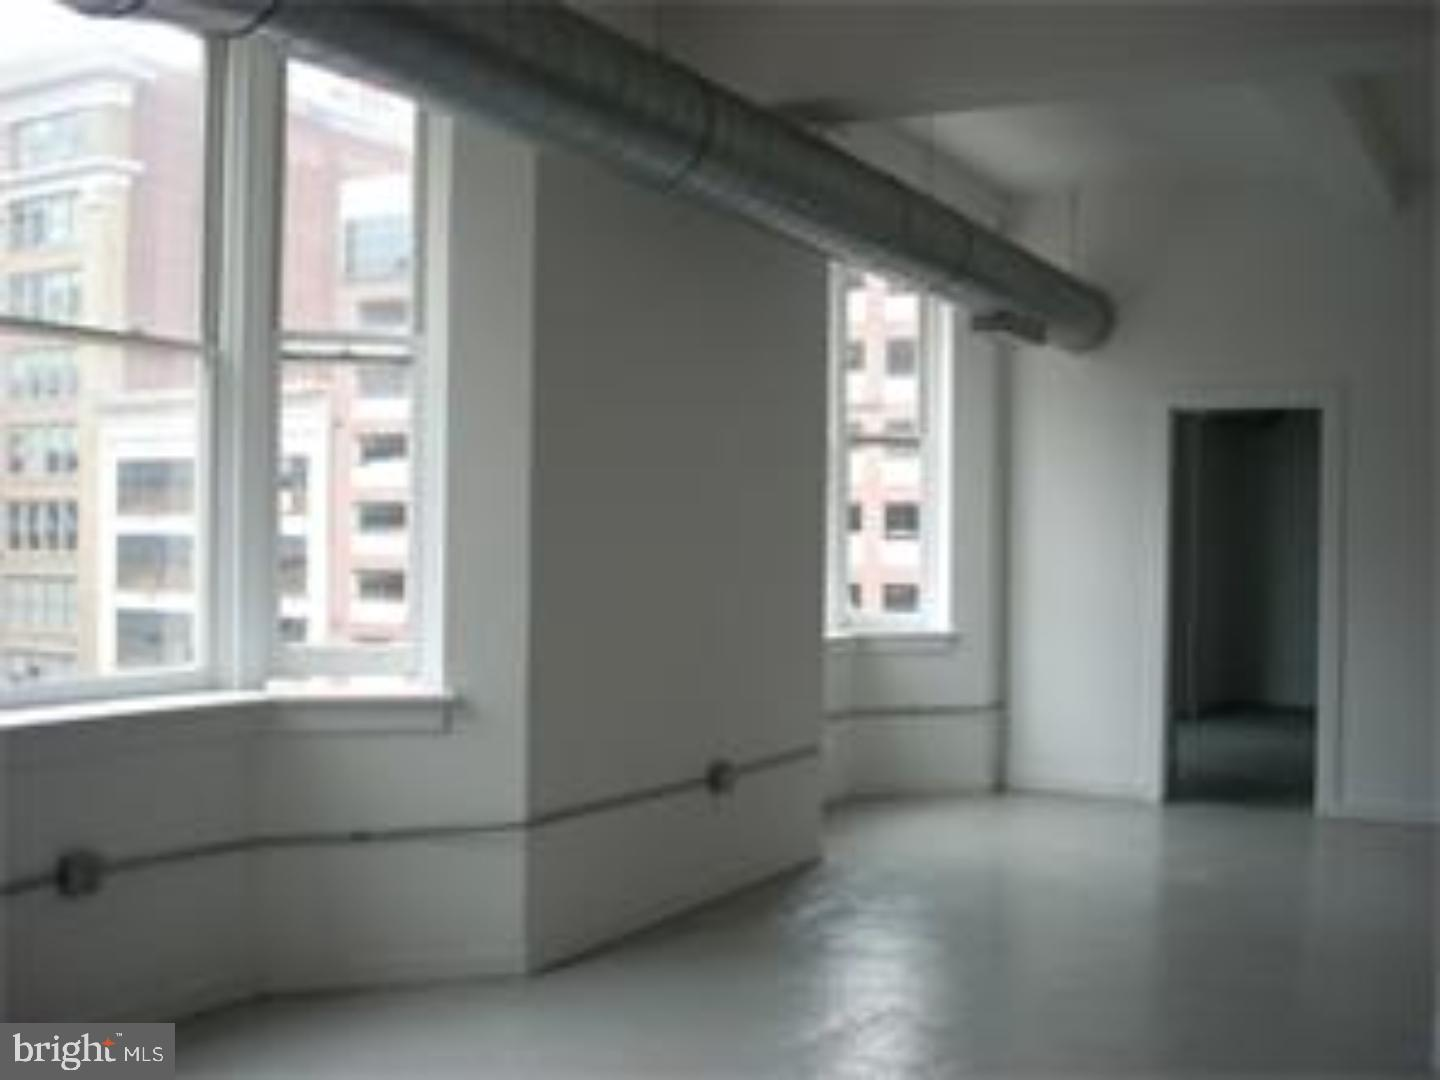 Unique corner NY Style Industrial LOFT located along the Avenue of the Arts with the Exciting N. Broad Street Renaissance of the Divine Lorraine and the Metropolitan Opera House, etc., this large 20x100 Loft is an open canvas for your design ideas. One Loft condo per floor in the Art Deco building at the corner of Broad and Race. 2 Bedrooms and 2 Bathrooms with open kitchen and living space. Features high ceilings, concrete floors, windows on 3 sides filtering in South, East and West light. Great views of City Hall, Convention Center and other architecture and art works that surrounds the building. 99 Walk Score. Close to Restaurants, shopping, Terminal Market and more. Septa, Train, Uber, etc.get around the City.